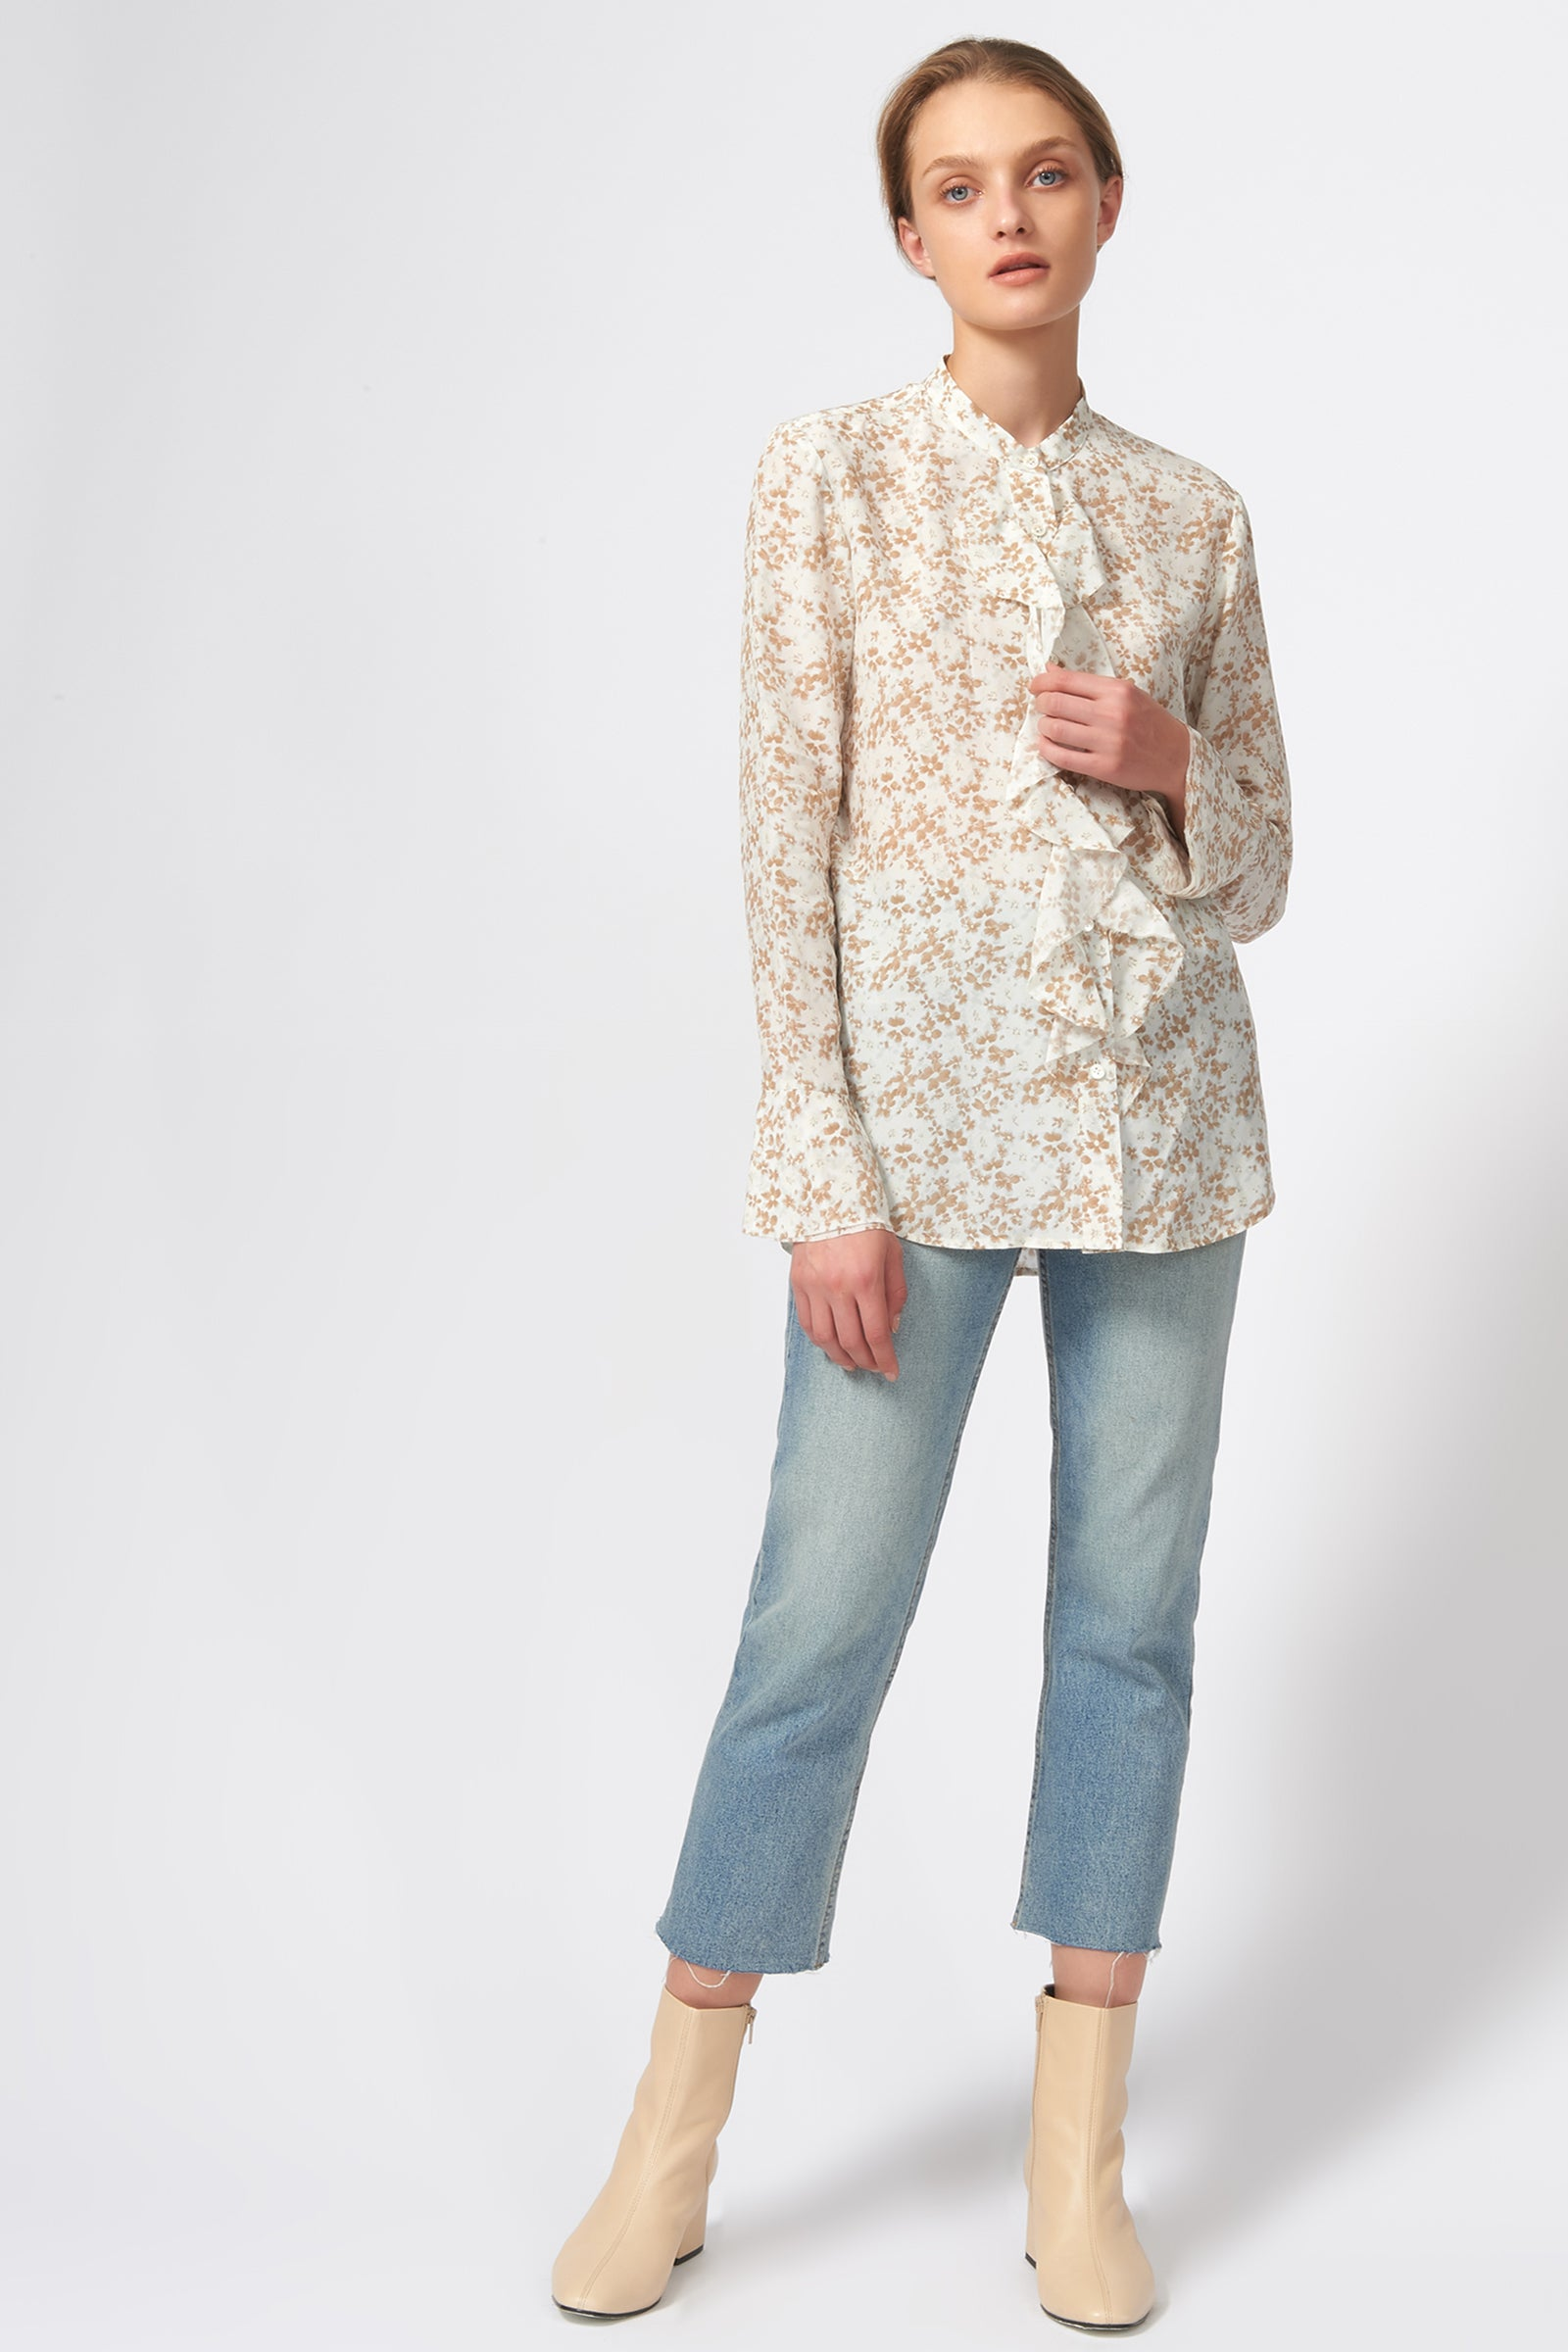 Kal Rieman Ruffle Front Blouse in Ivory Floral Print on Model Front Full View